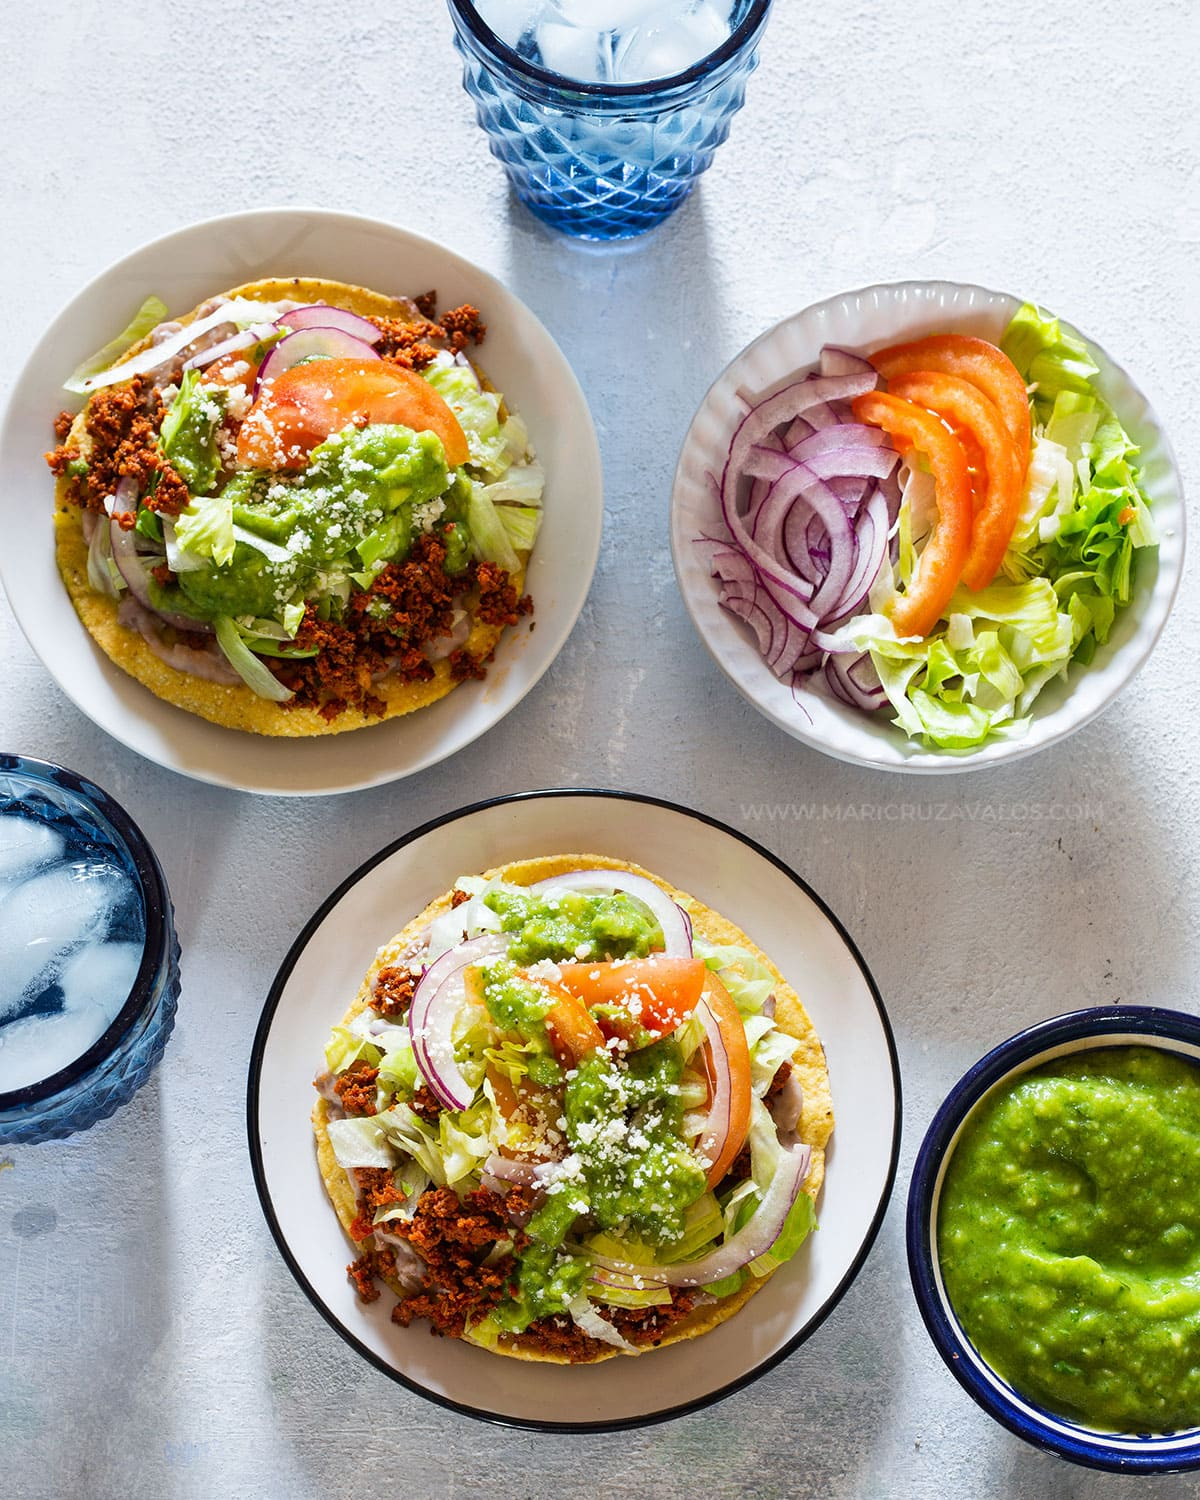 Tostadas de chorizo served on small plates and seen from above.